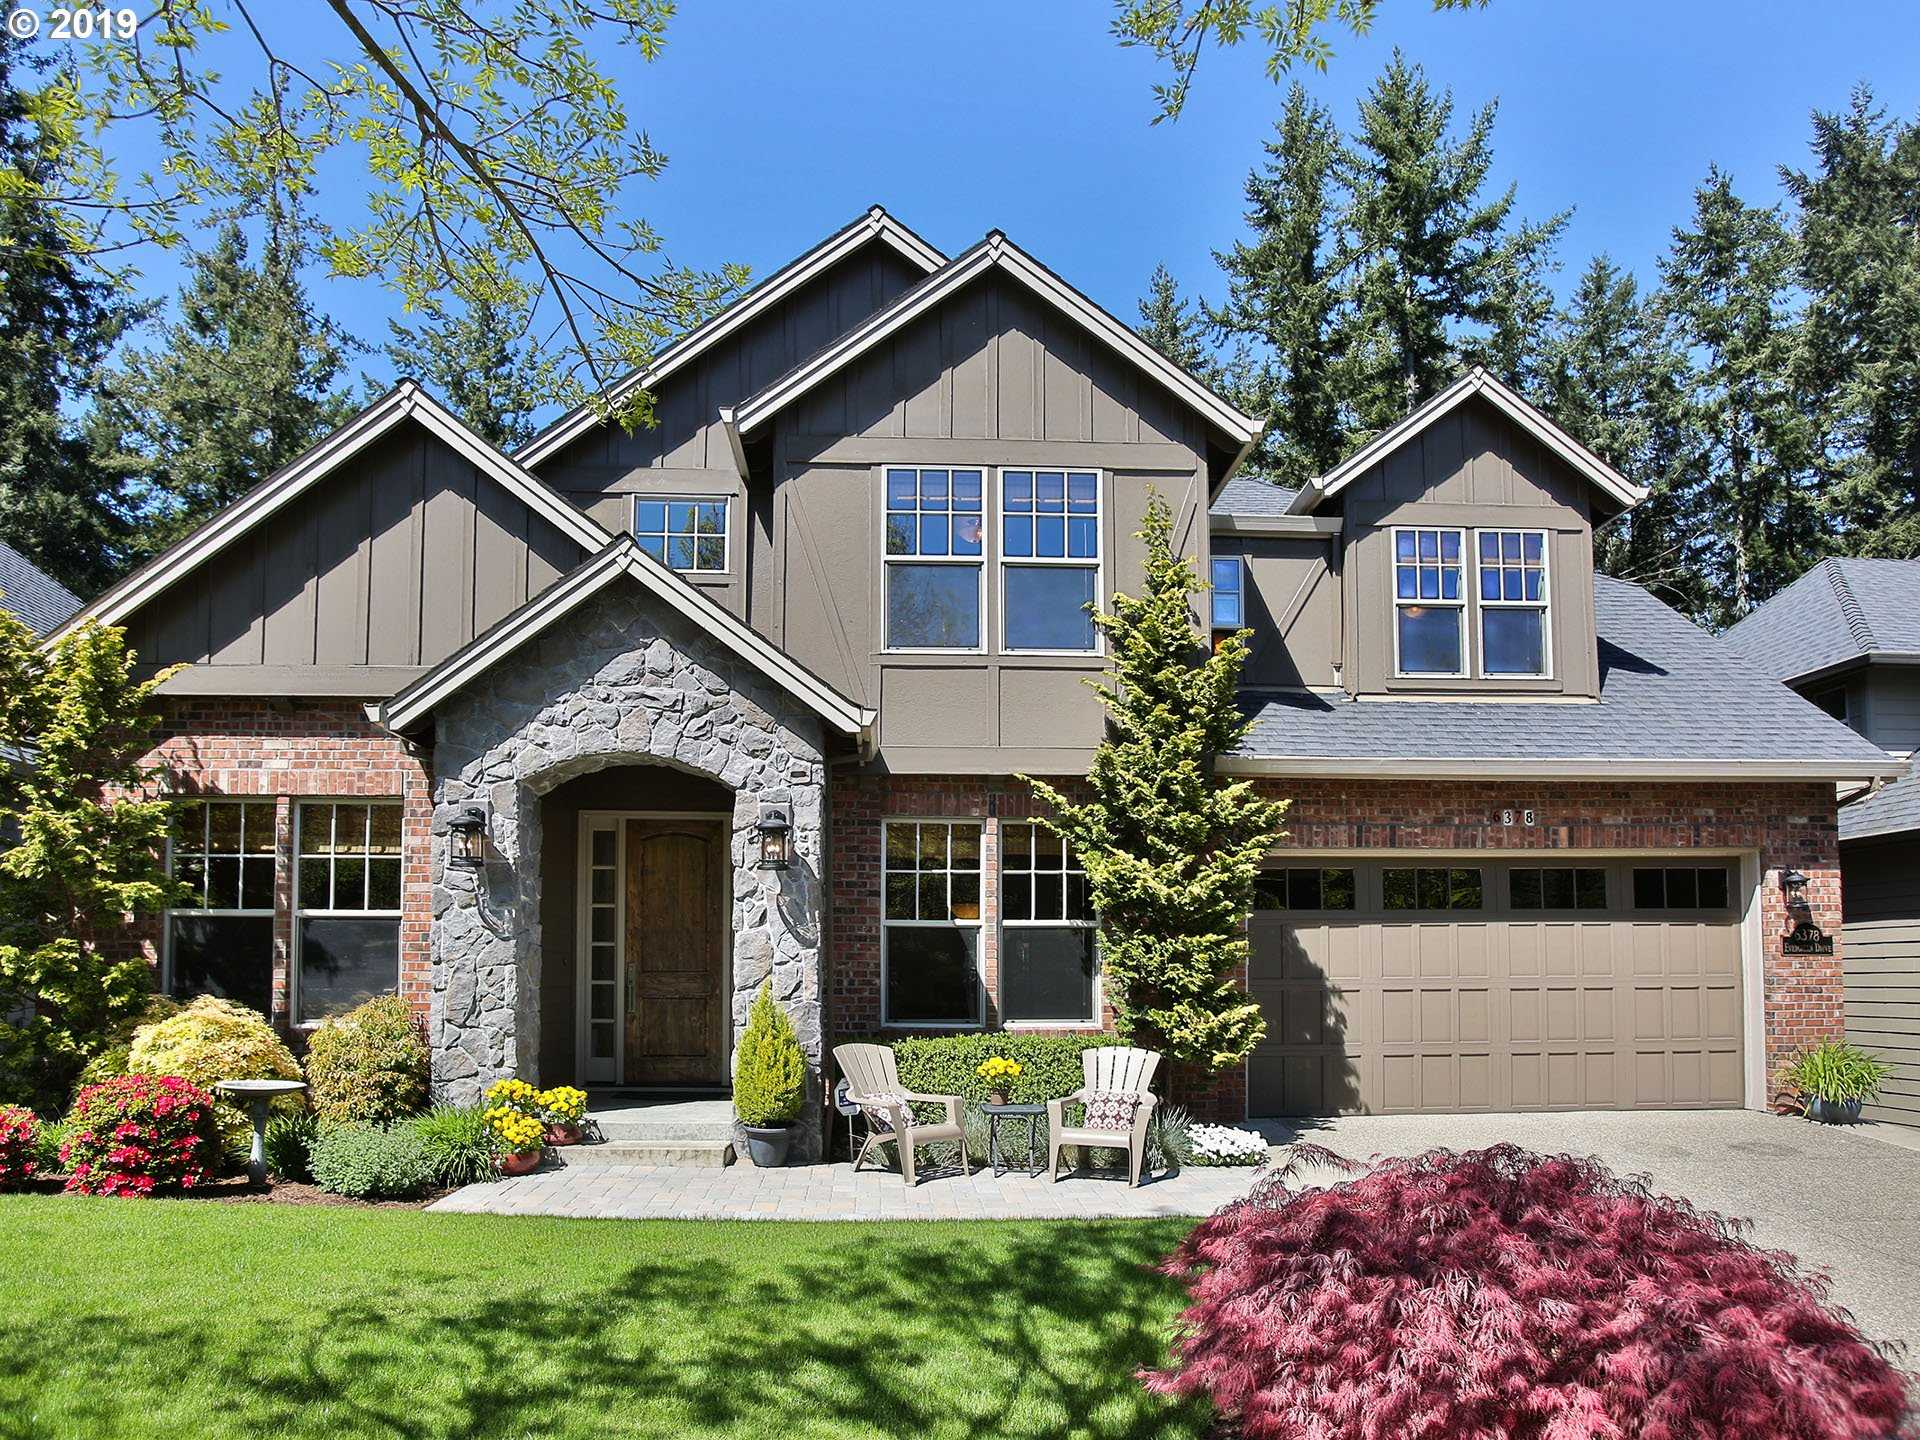 $995,000 - 5Br/4Ba -  for Sale in Renaissance Ridge, West Linn